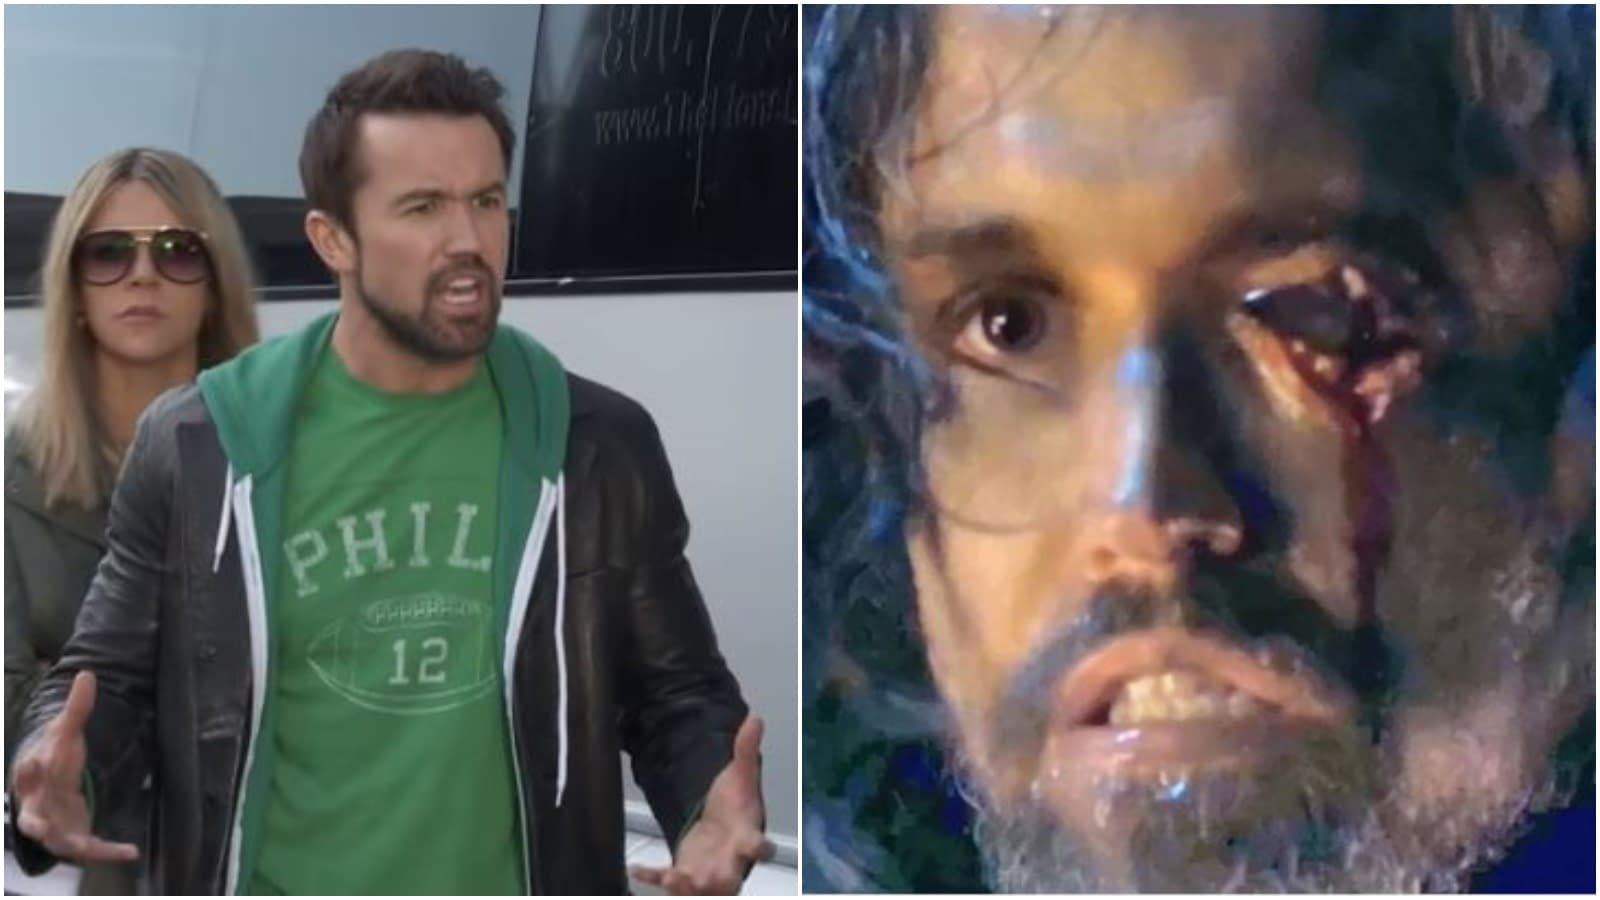 'It's Always Sunny in Philadelphia' and 'Game of Thrones': One Mac to Rule Them All